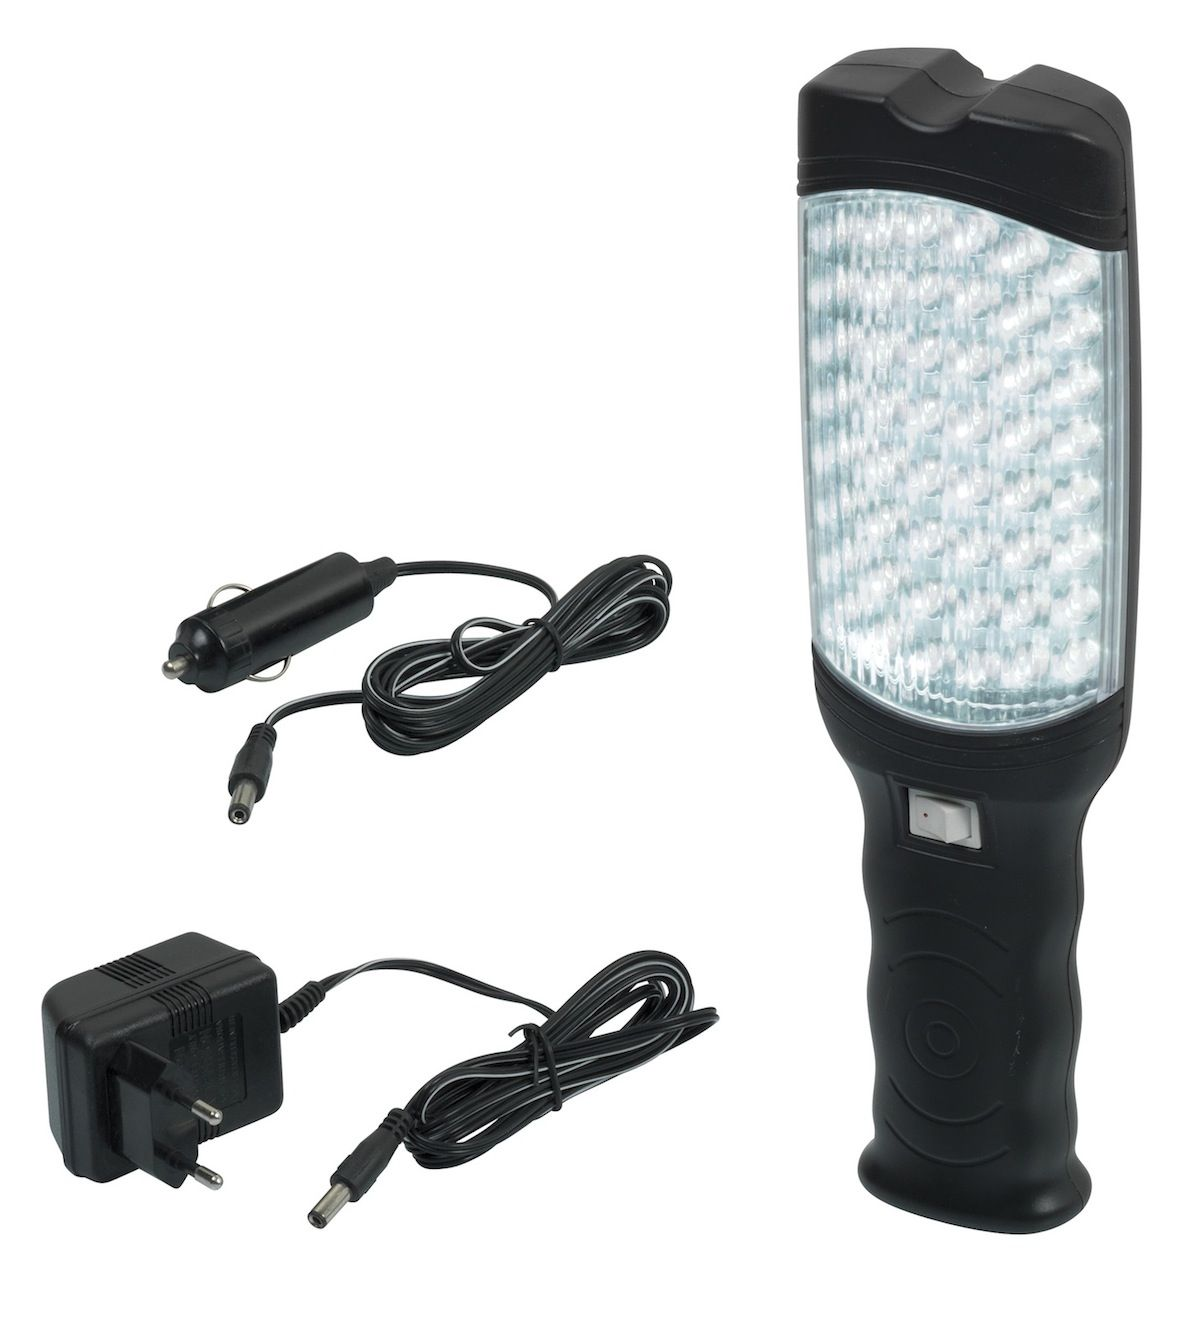 lampe baladeuse 48 leds rechargeable allume cigares prpl48led b ebay. Black Bedroom Furniture Sets. Home Design Ideas